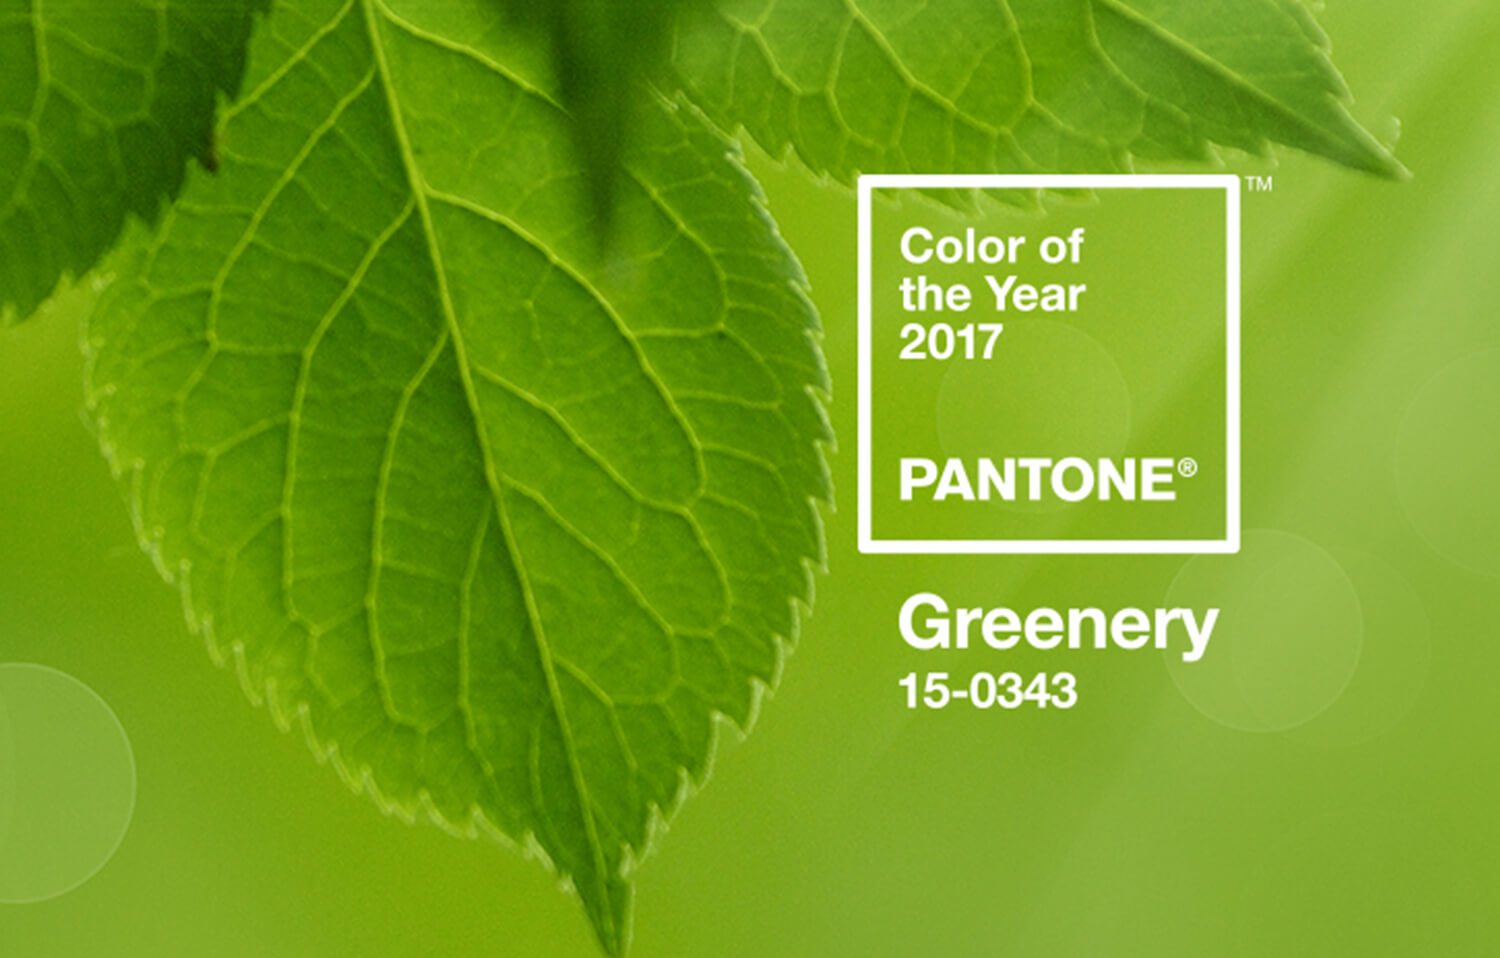 Kationette-Fashionblog-lifestyle-greenery-pantone-coloroftheyear-platform-fashion-dusseldorf-review